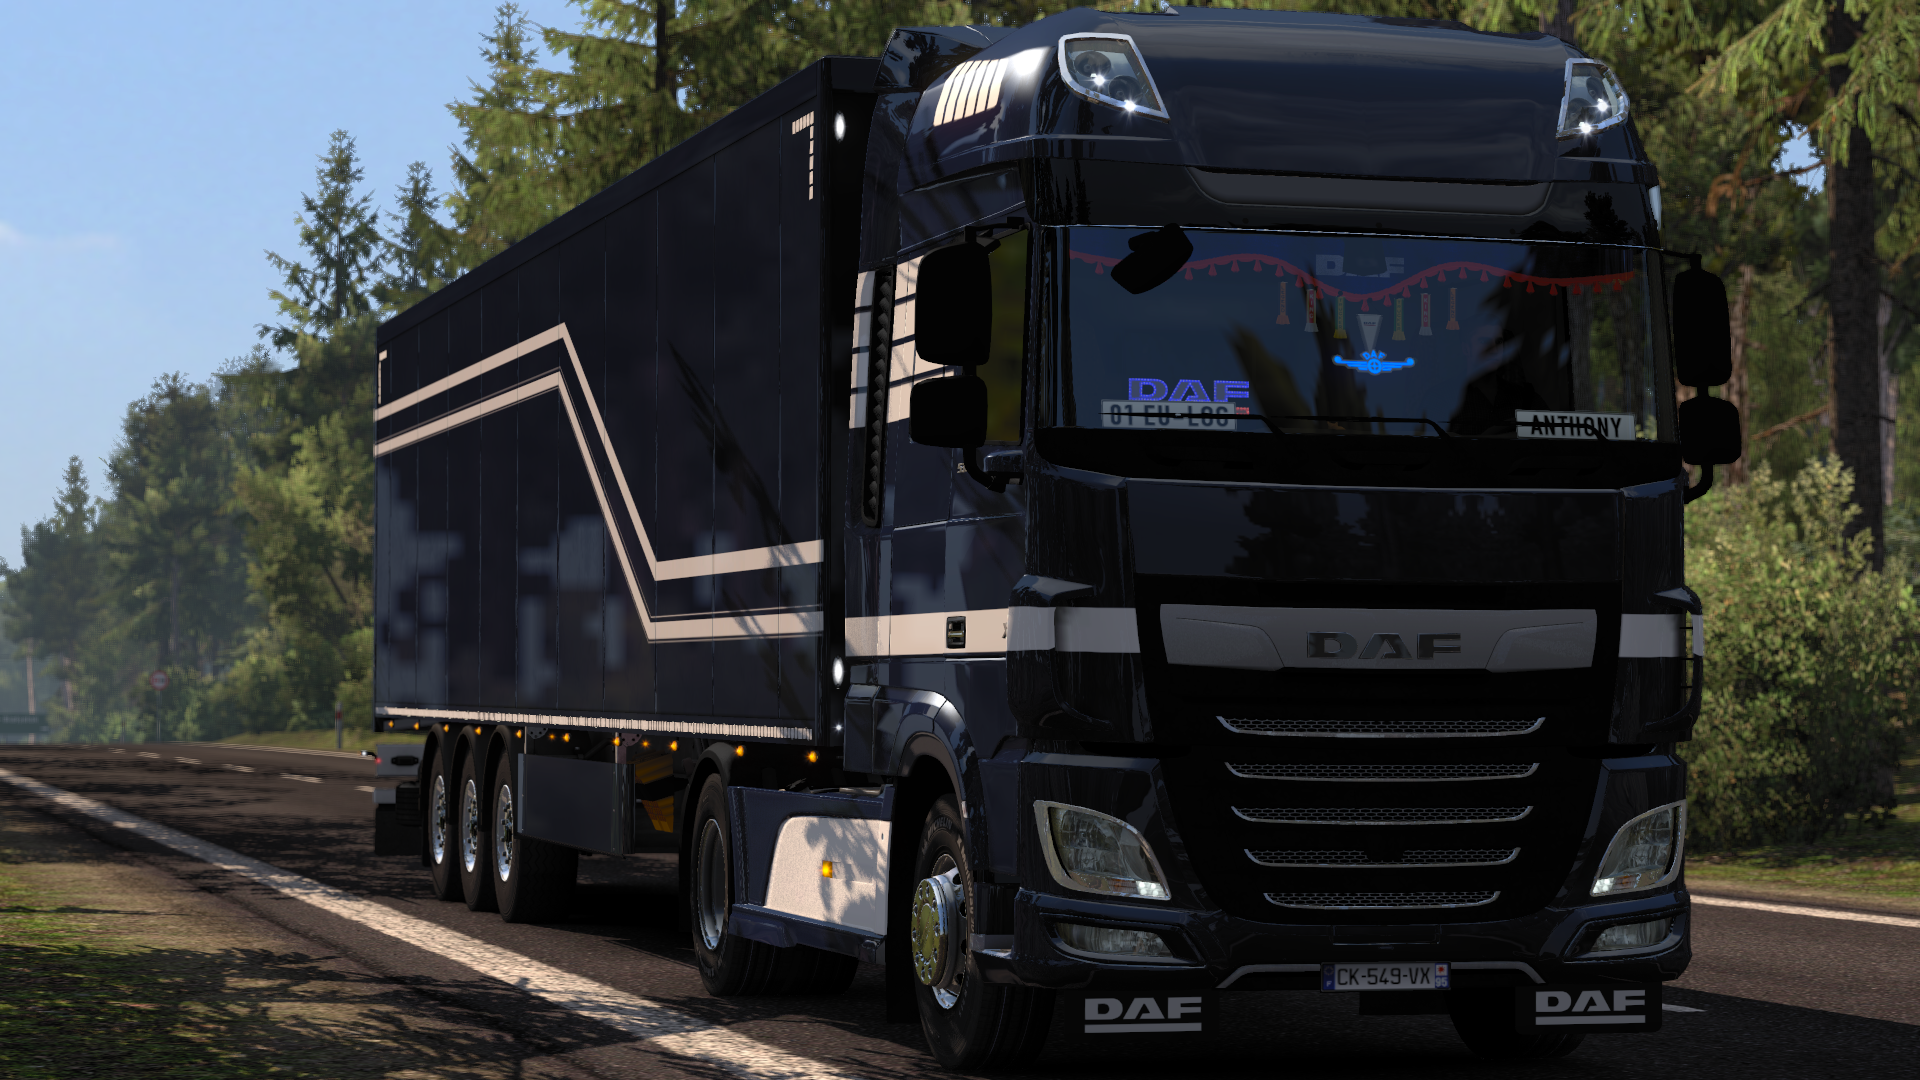 ets2_20180814_182328_00.png